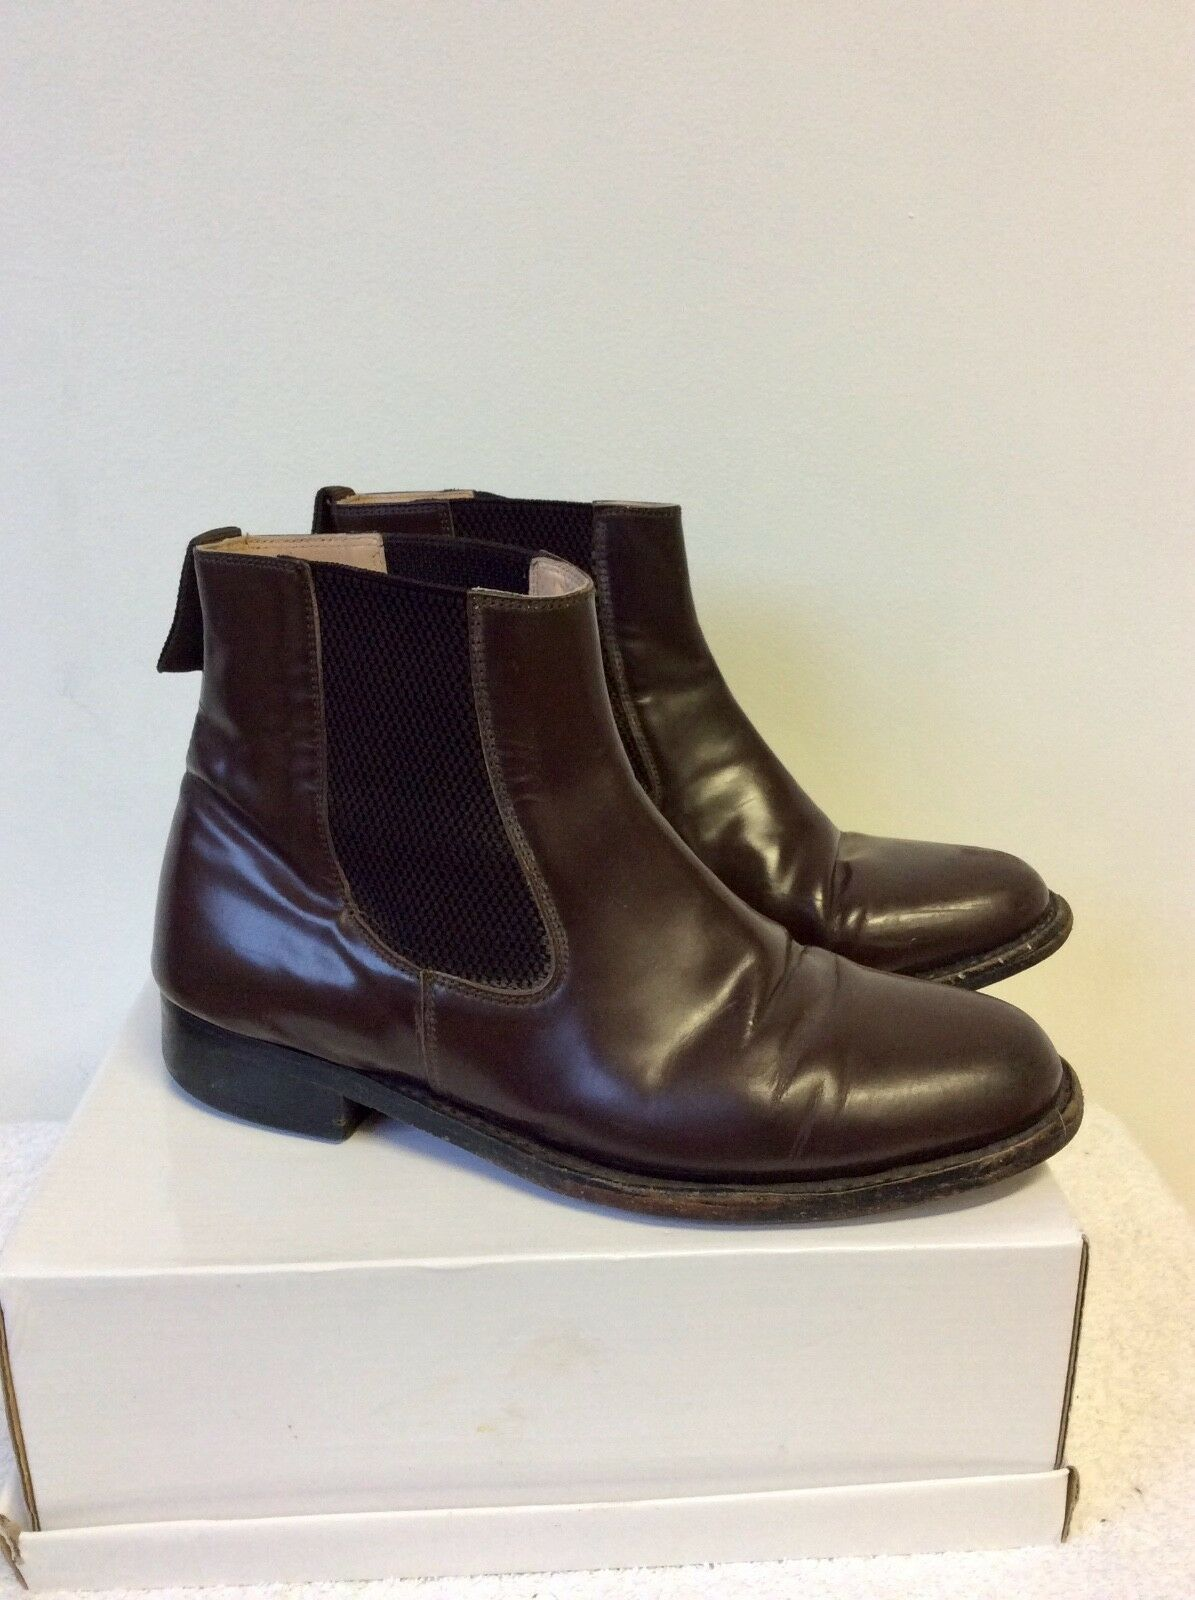 SAMUEL WINDSOR DARK BROWN HAND MADE LEATHER CHELSEA BOOTS SIZE 7.5  41